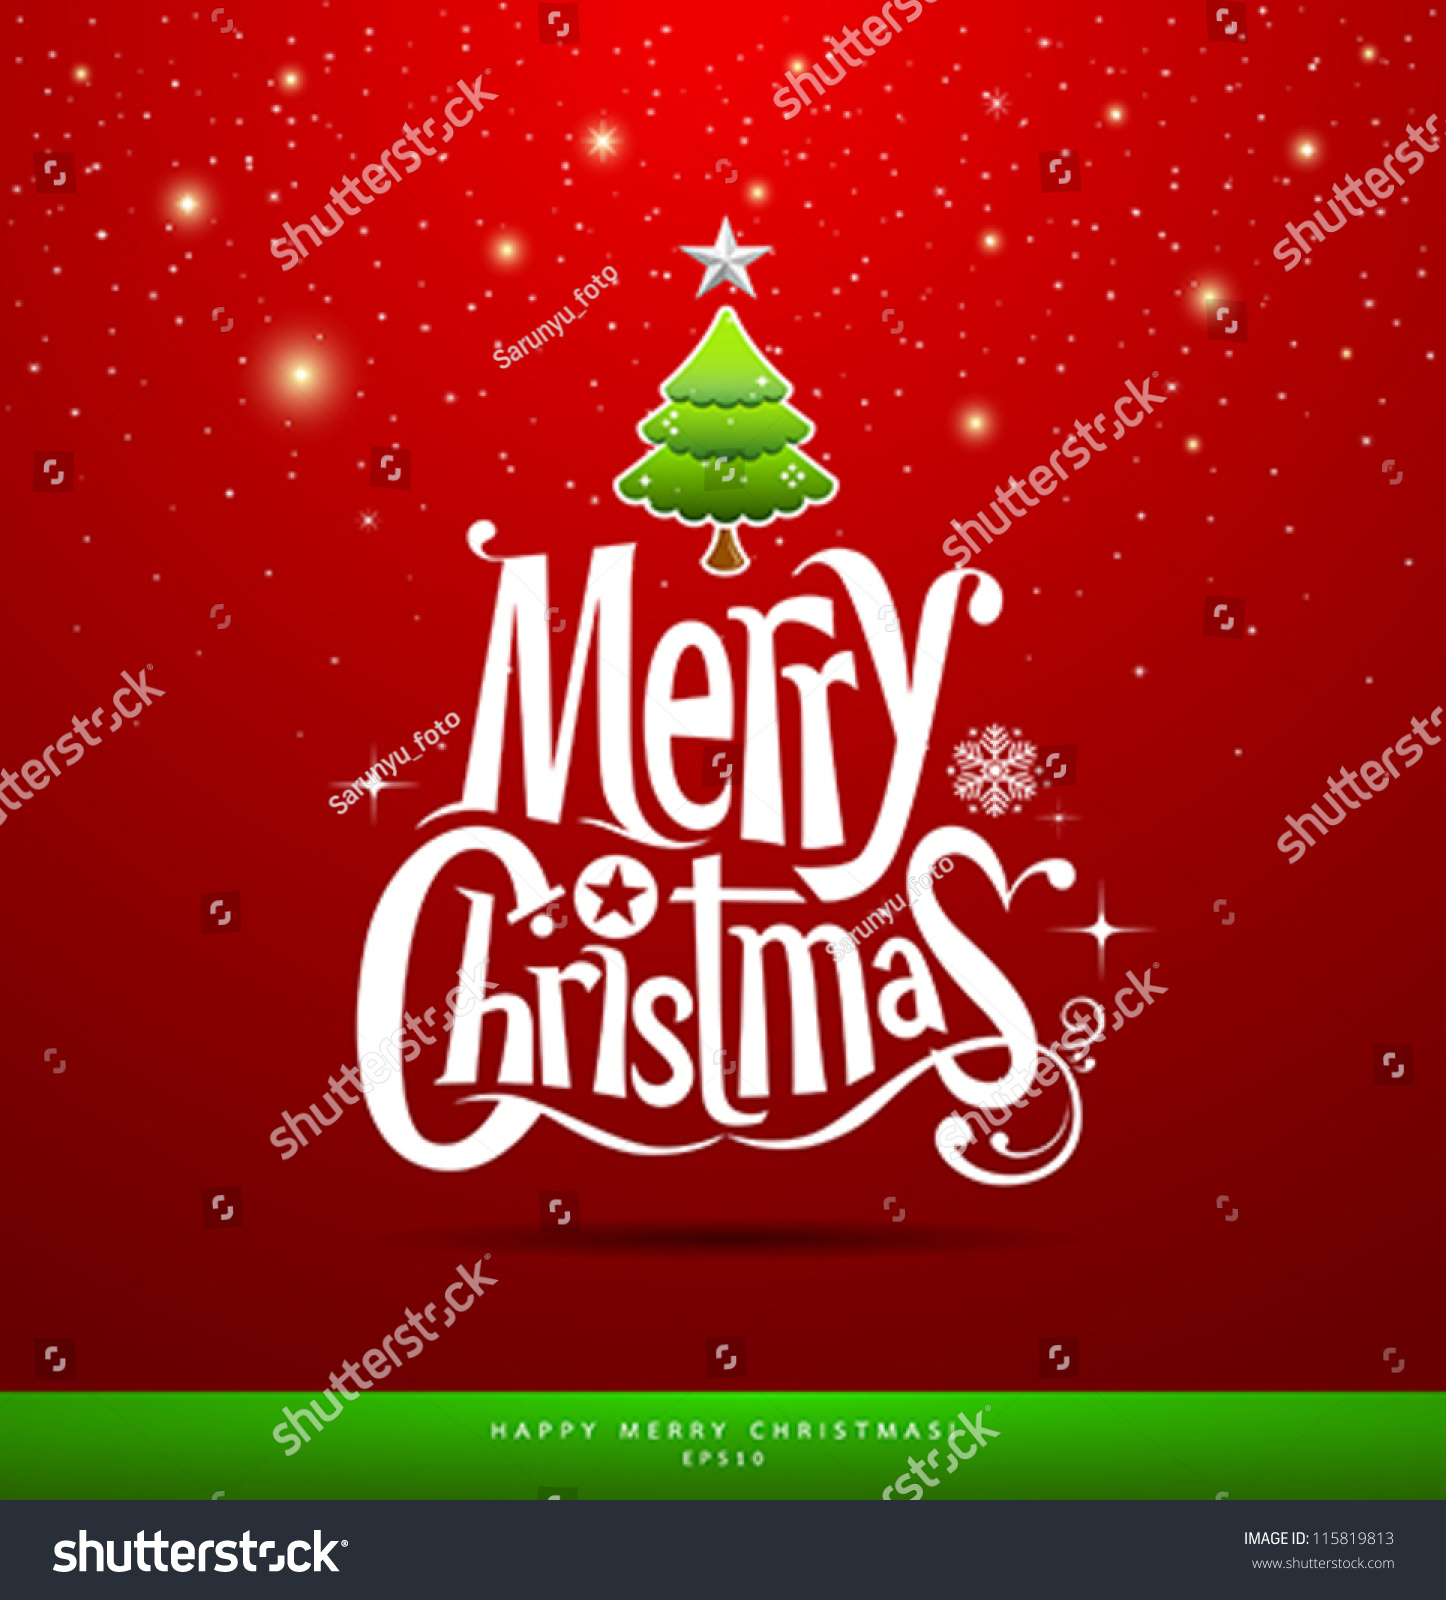 Christmas Greeting Card Merry Christmas Lettering Stock Vector ...